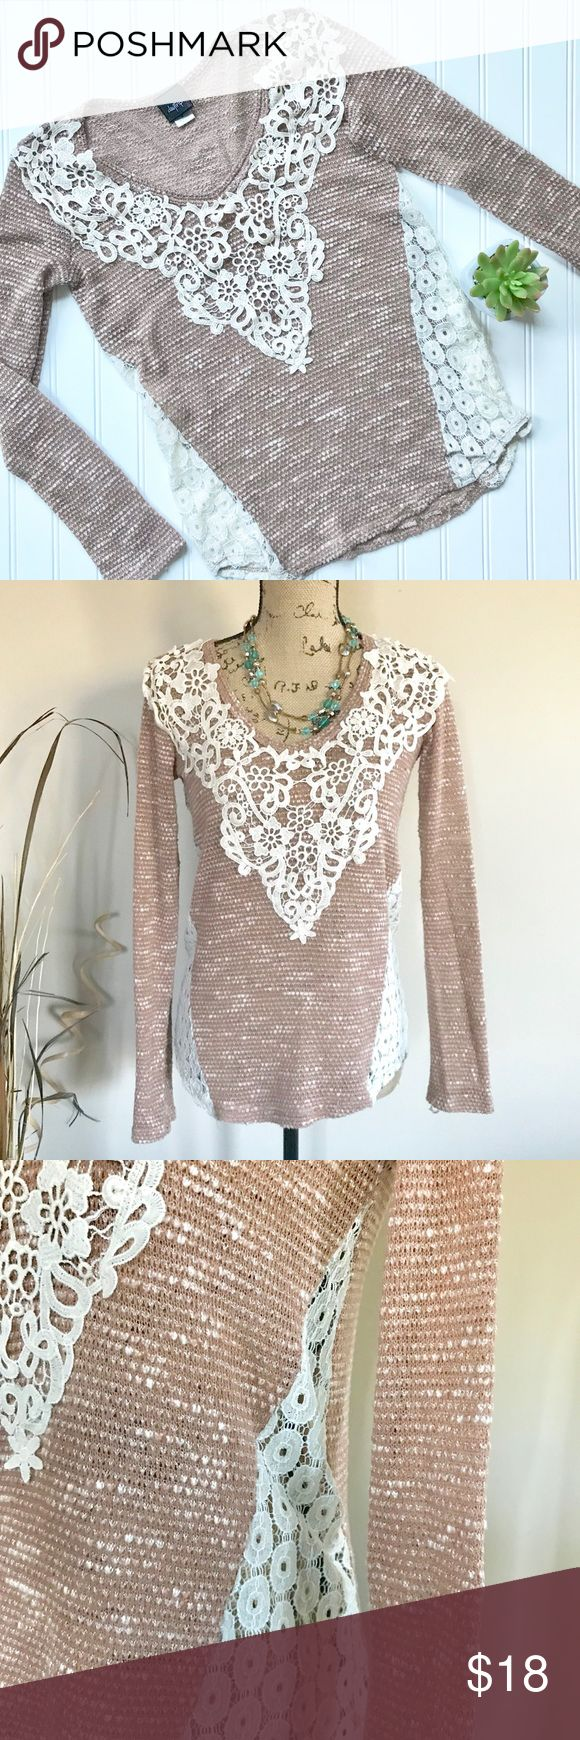 Daytrip lace inset top Brown and ivory knit top by Daytrip for Buckle has a lace yolk overlay and lace insets on each side. Full length sleeves, scoop neck, rounded hem. Size M. Excellent condition, no flaws. Polyester/rayon blend. Buckle Tops